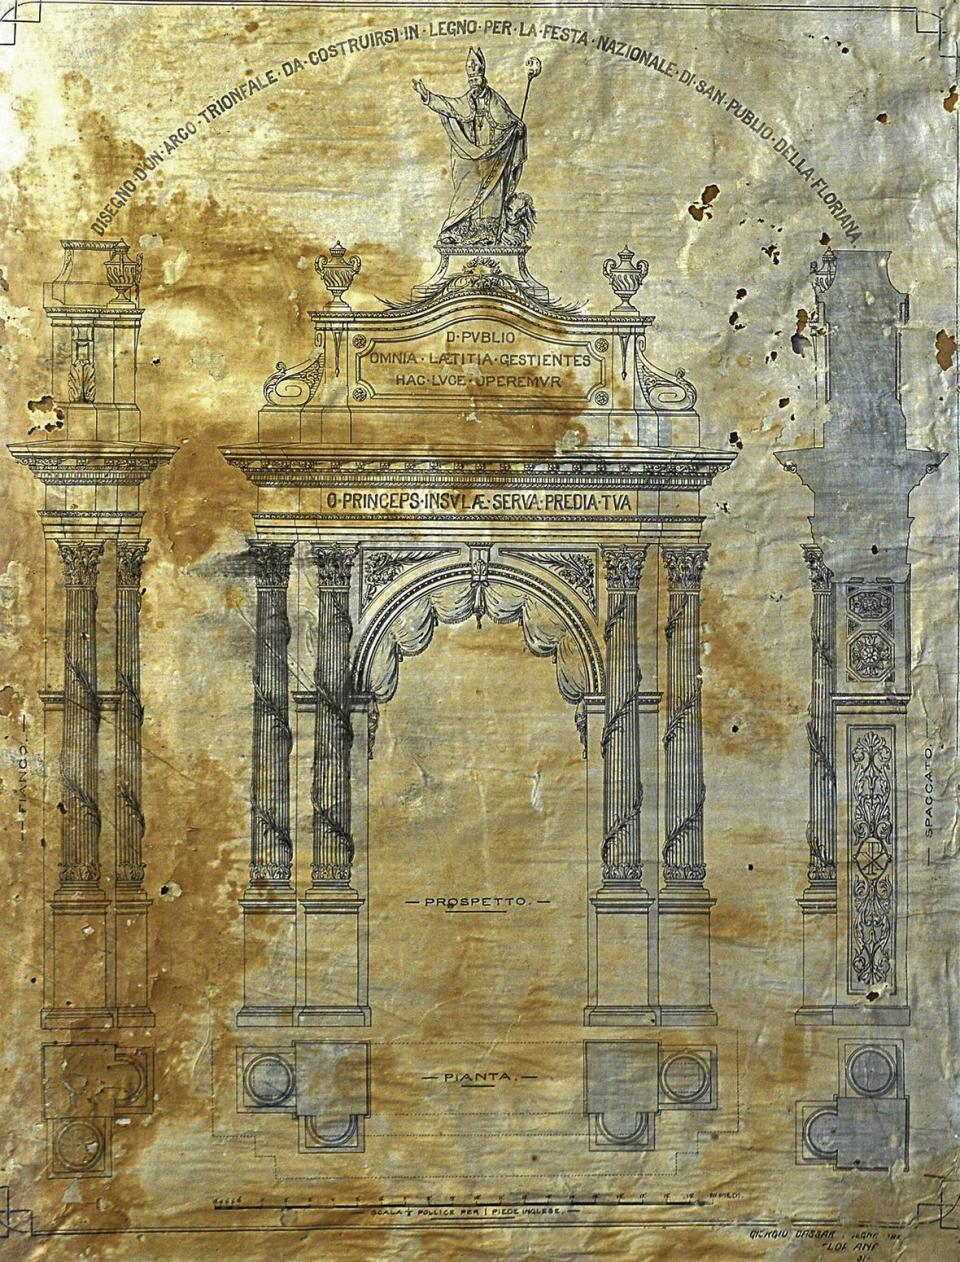 The original drawing of the triumphal arch of St Publius in Floriana, which was made by Giorgio Cassar in the 1890s.